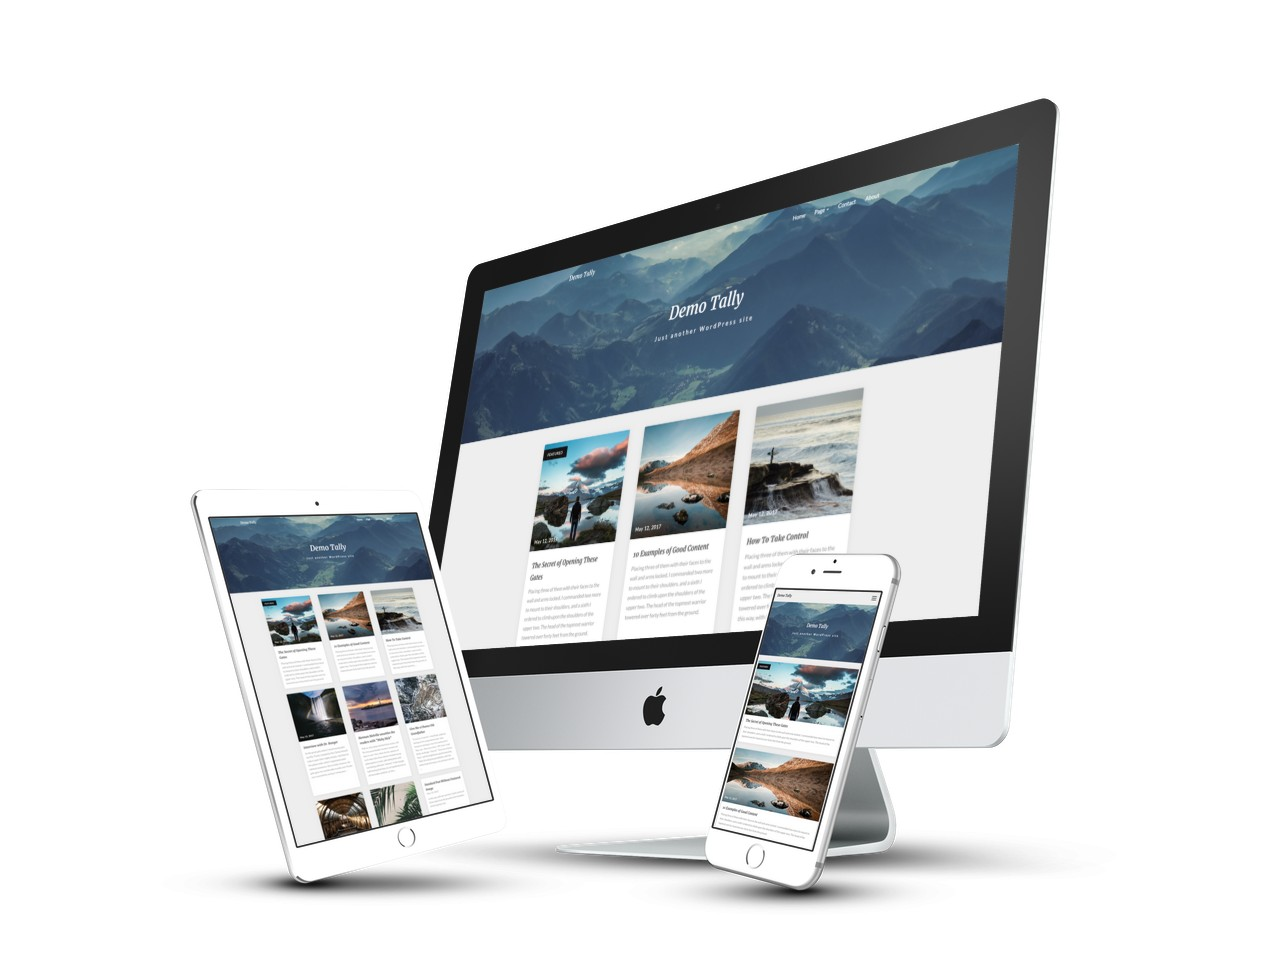 Noteblog Free Minimalist Clean White Seo Wp Theme